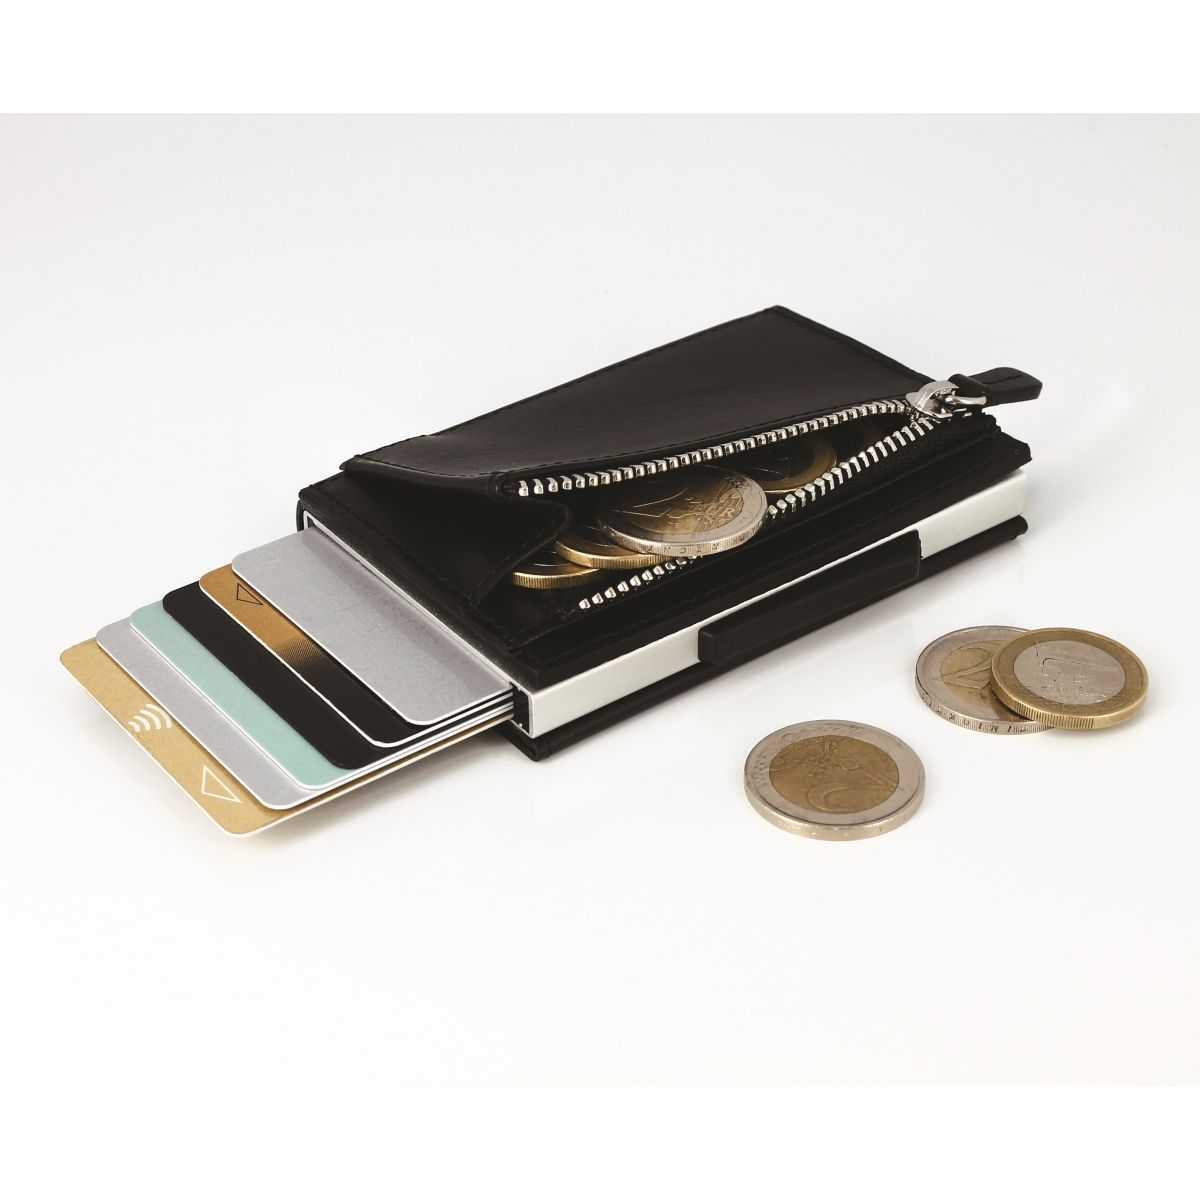 OGON Cascade Card Case Wallet With Zipper - Black